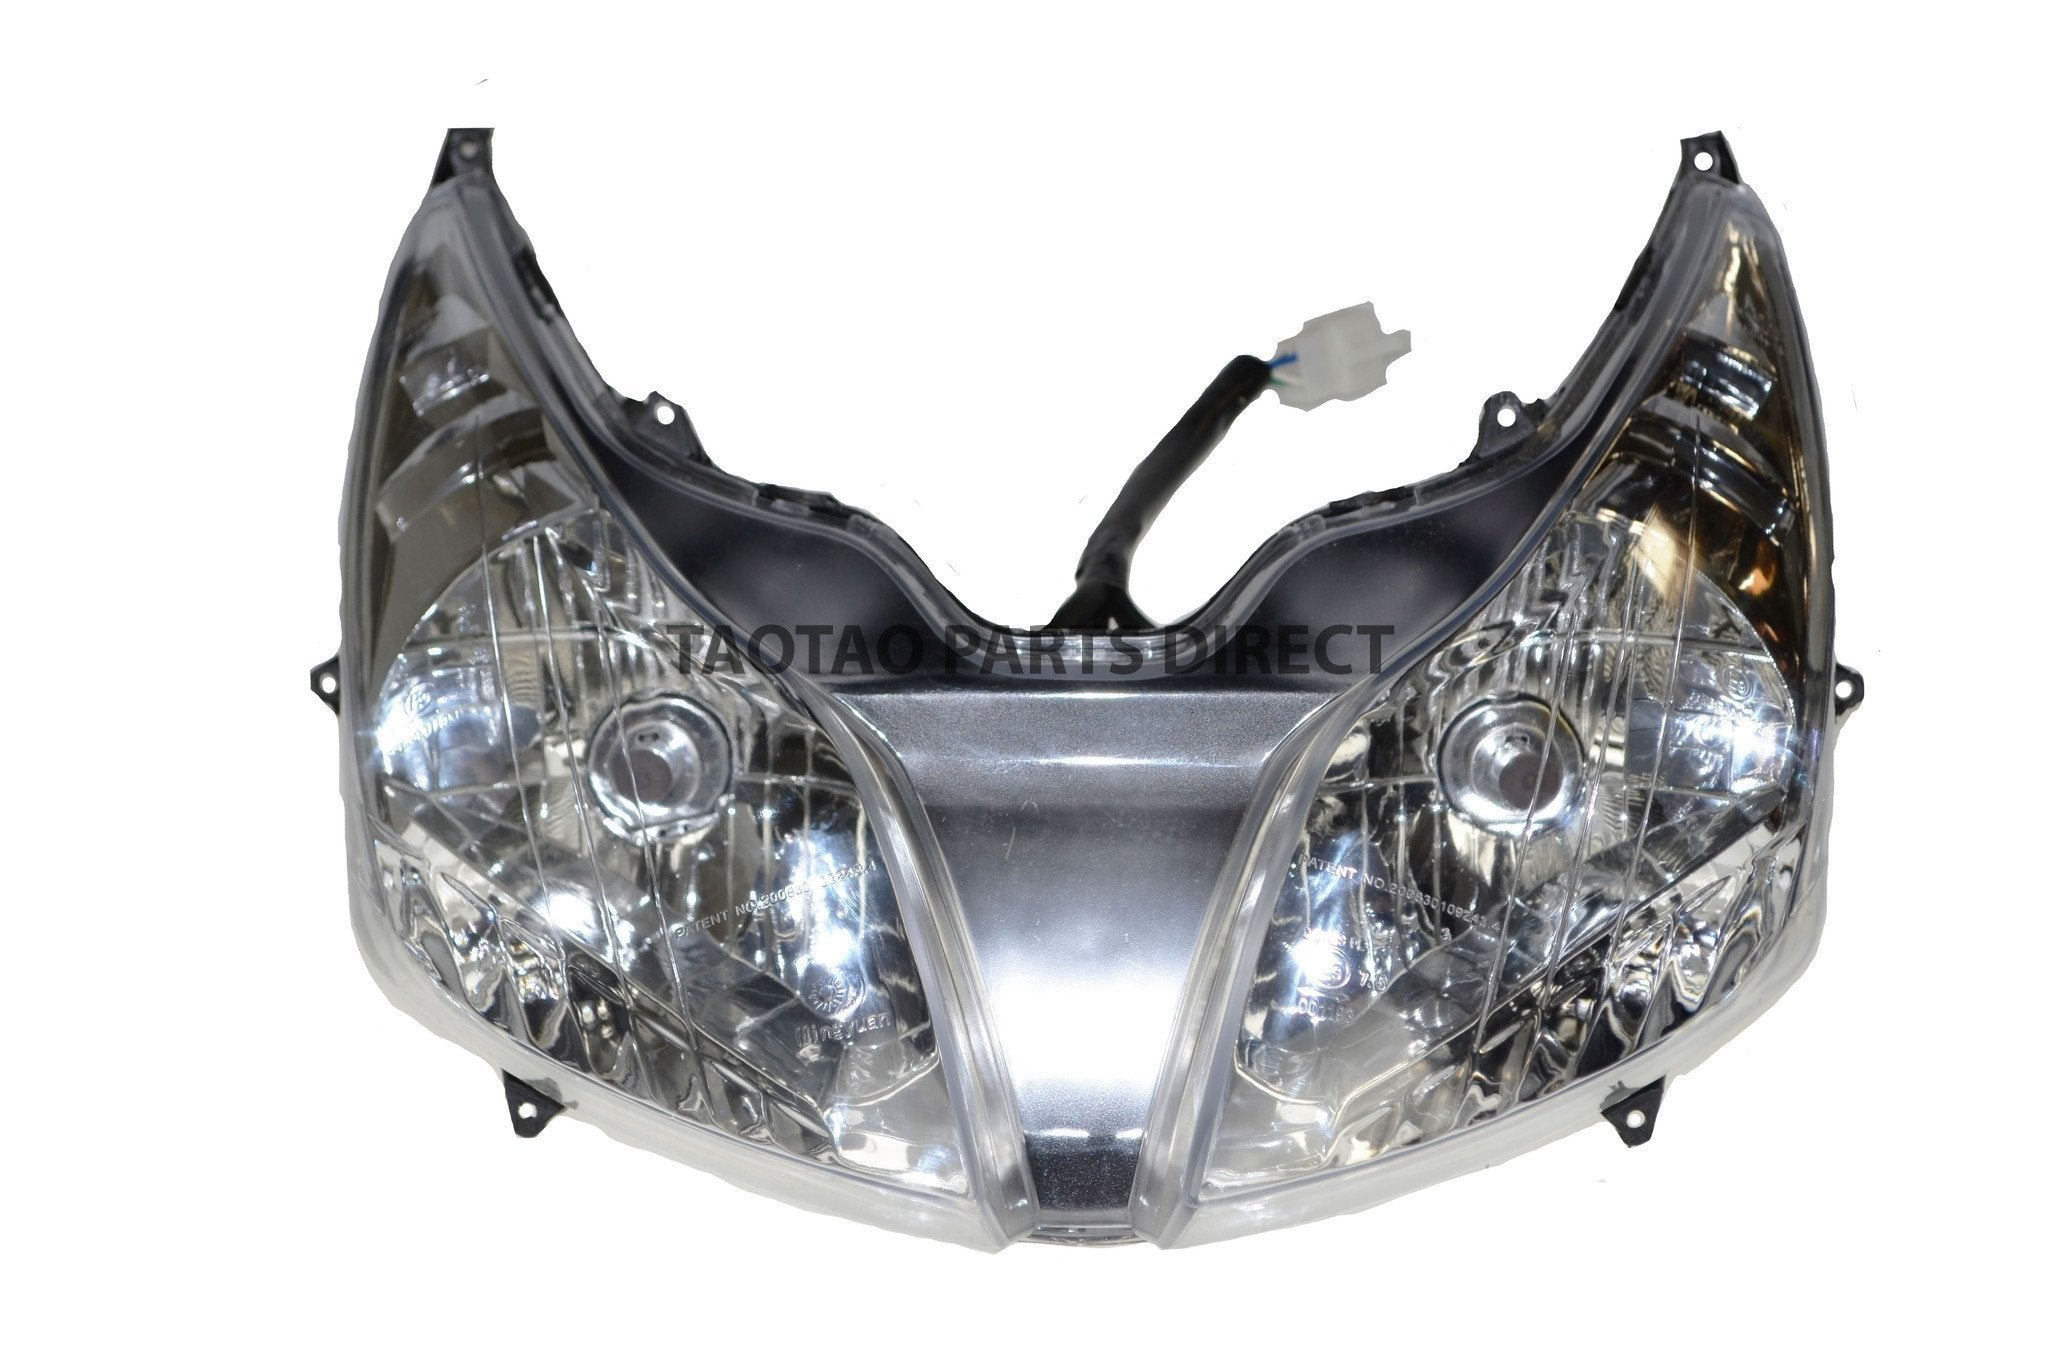 Evo 150 Headlight - TaoTaoPartsDirect.com